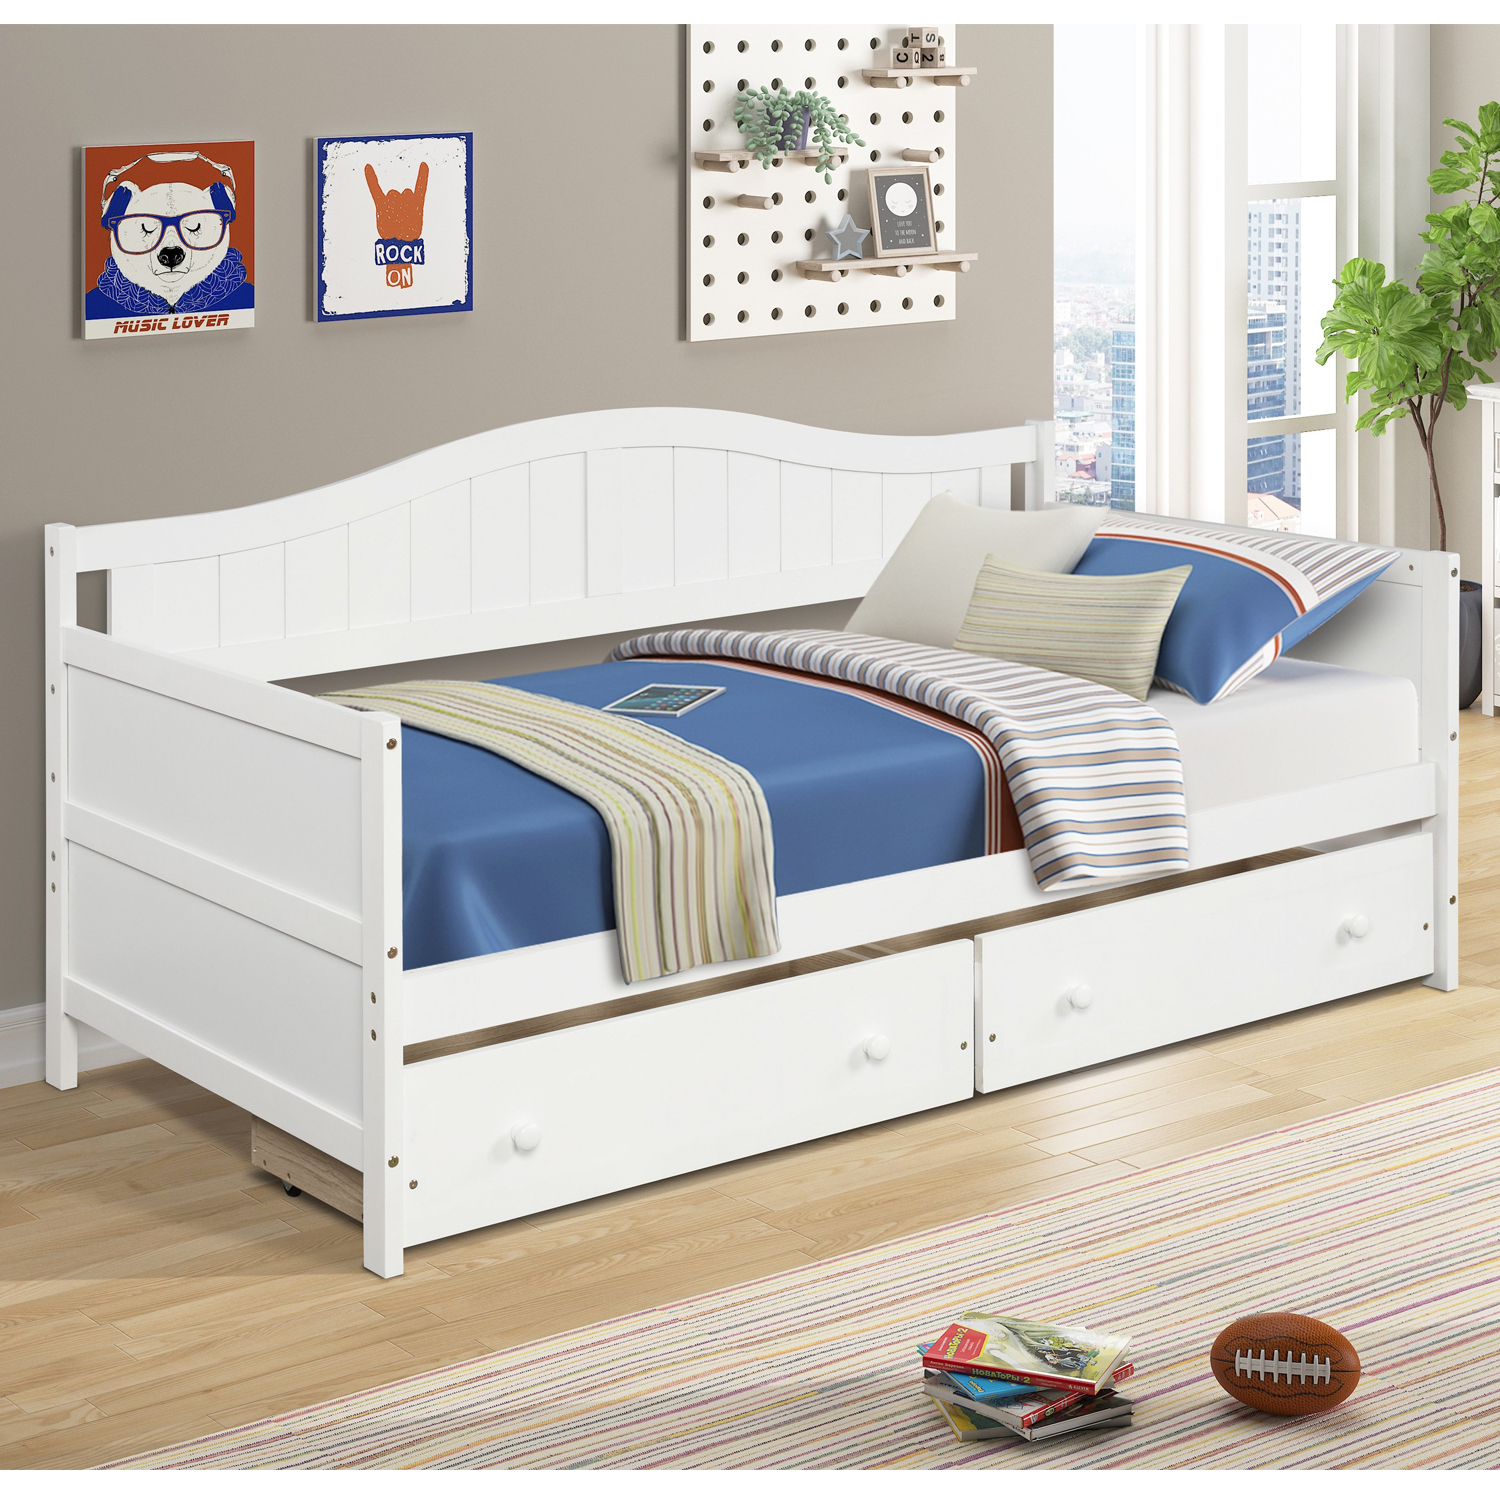 bed with drawers underneath